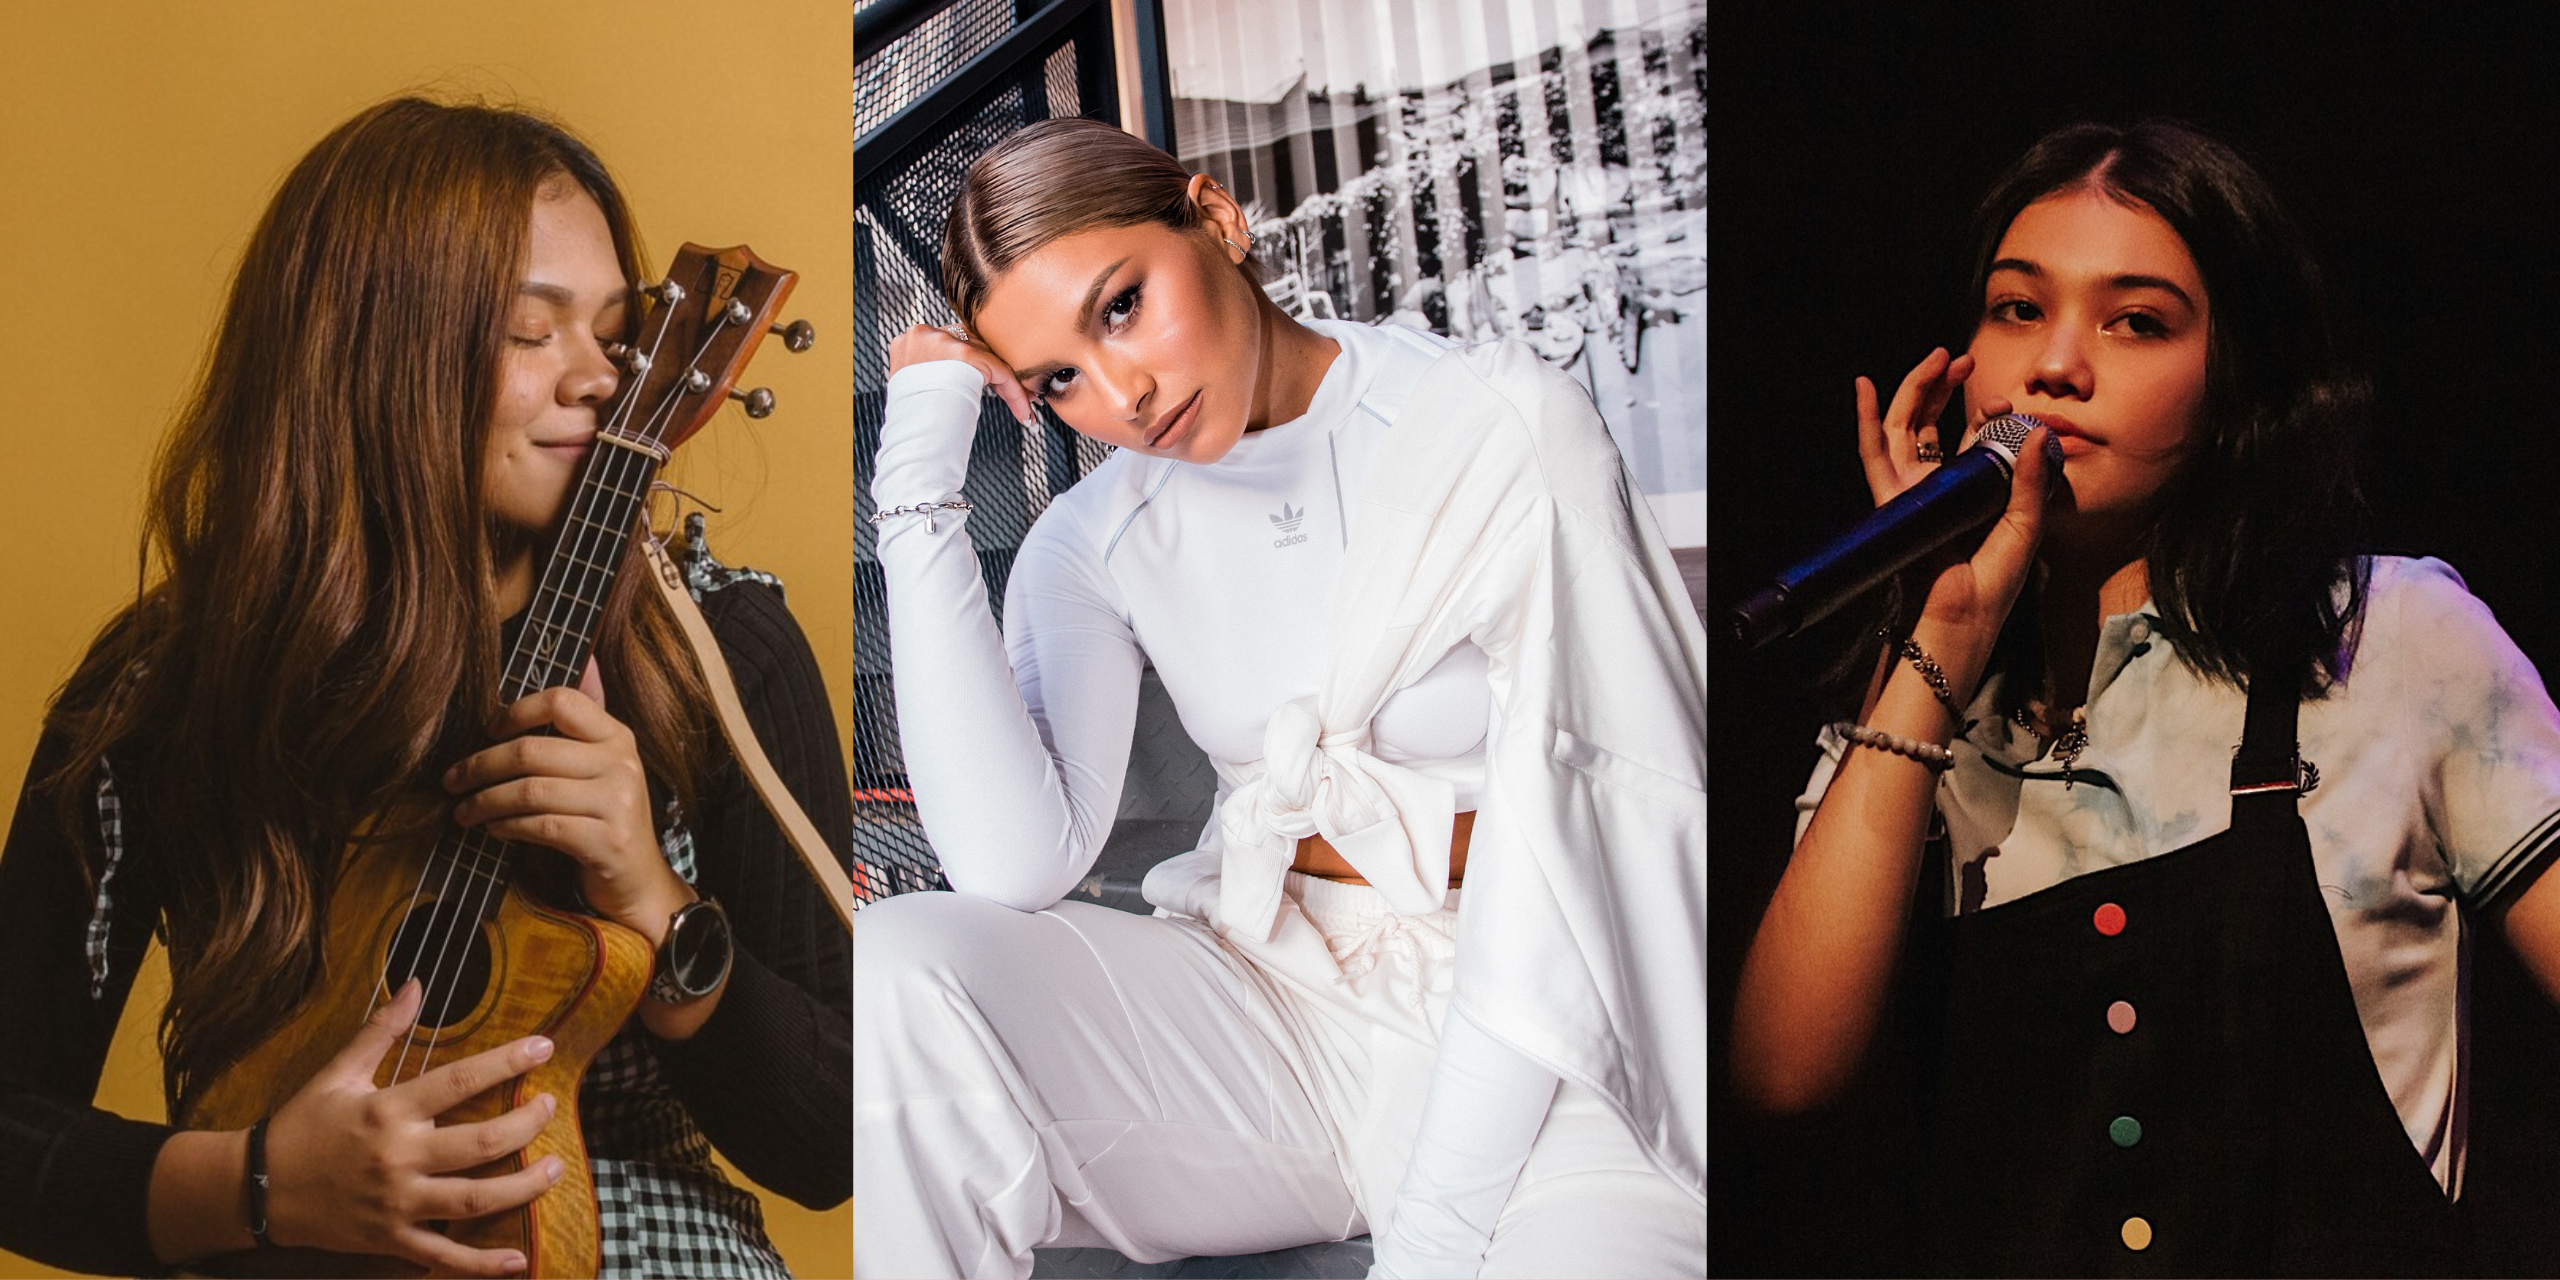 Reneé Dominique, Tabitha Nauser and Shye to perform at Marina Bay Sands' Open Stage this February